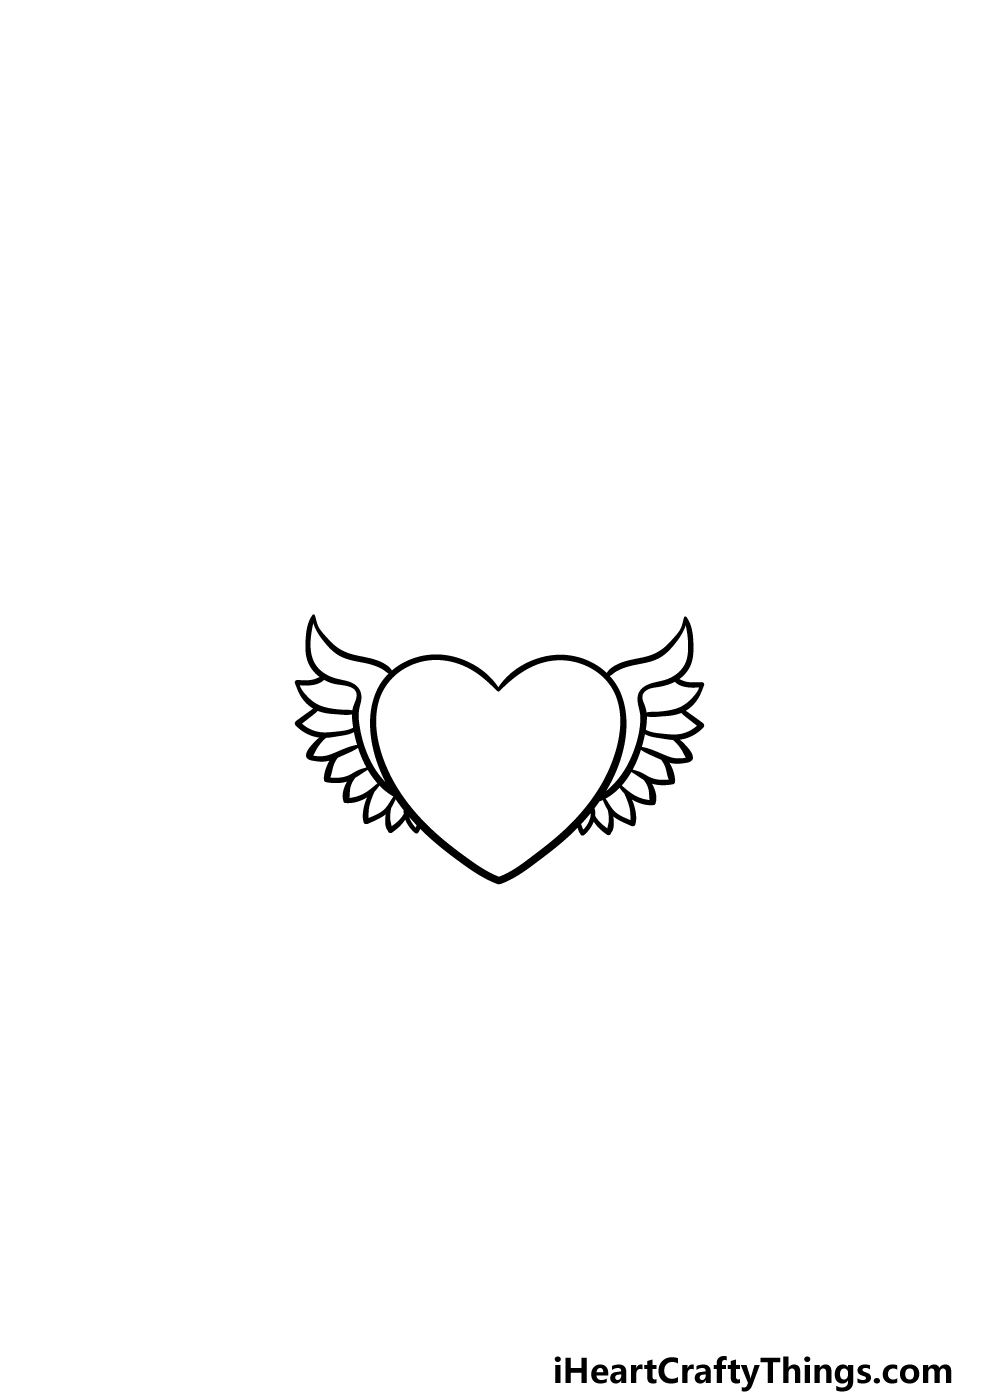 drawing a heart with wings step 2